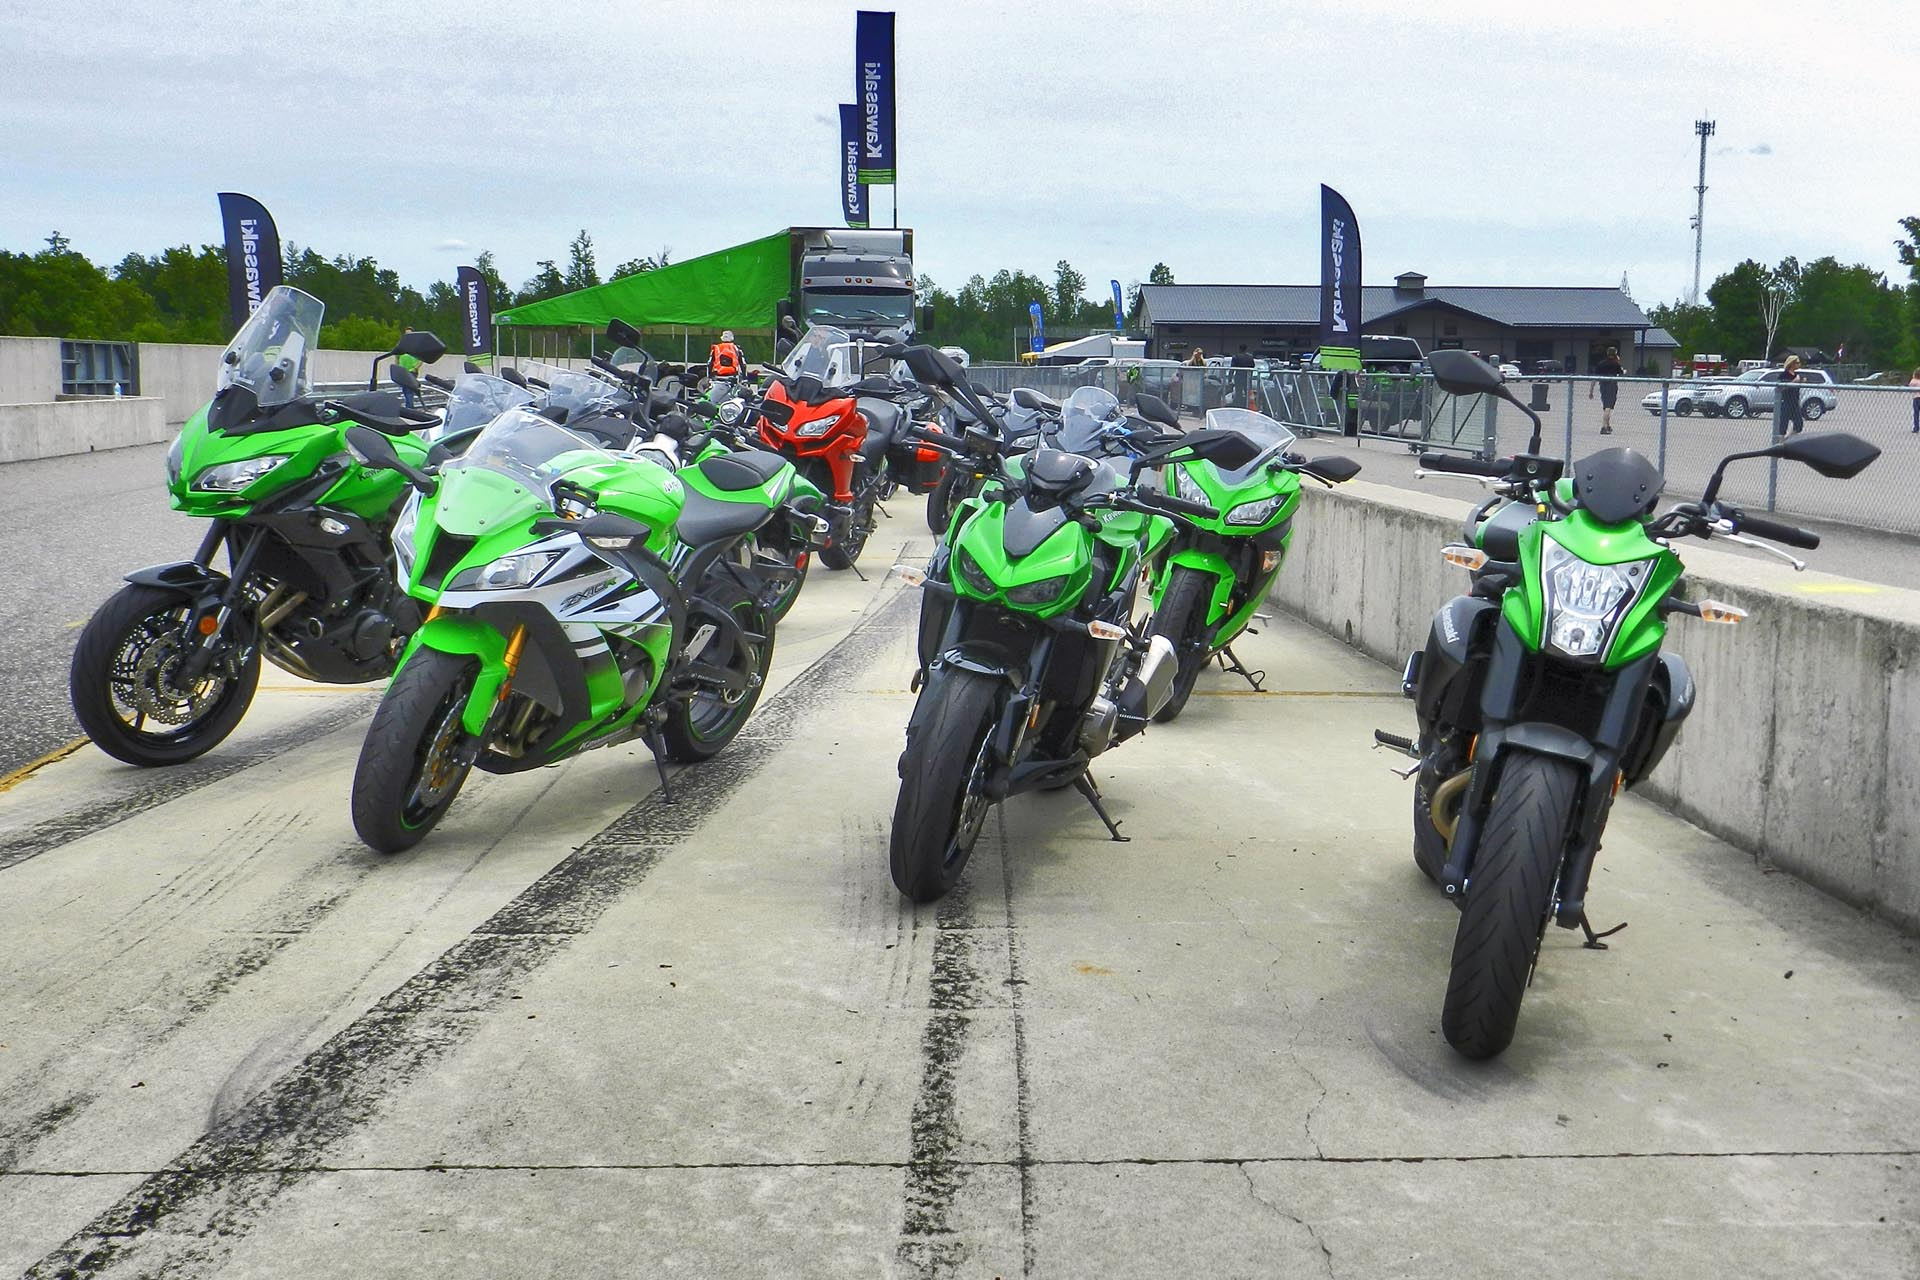 Left to right: Versys 650, ZX-10R, Z1000, ER-6n